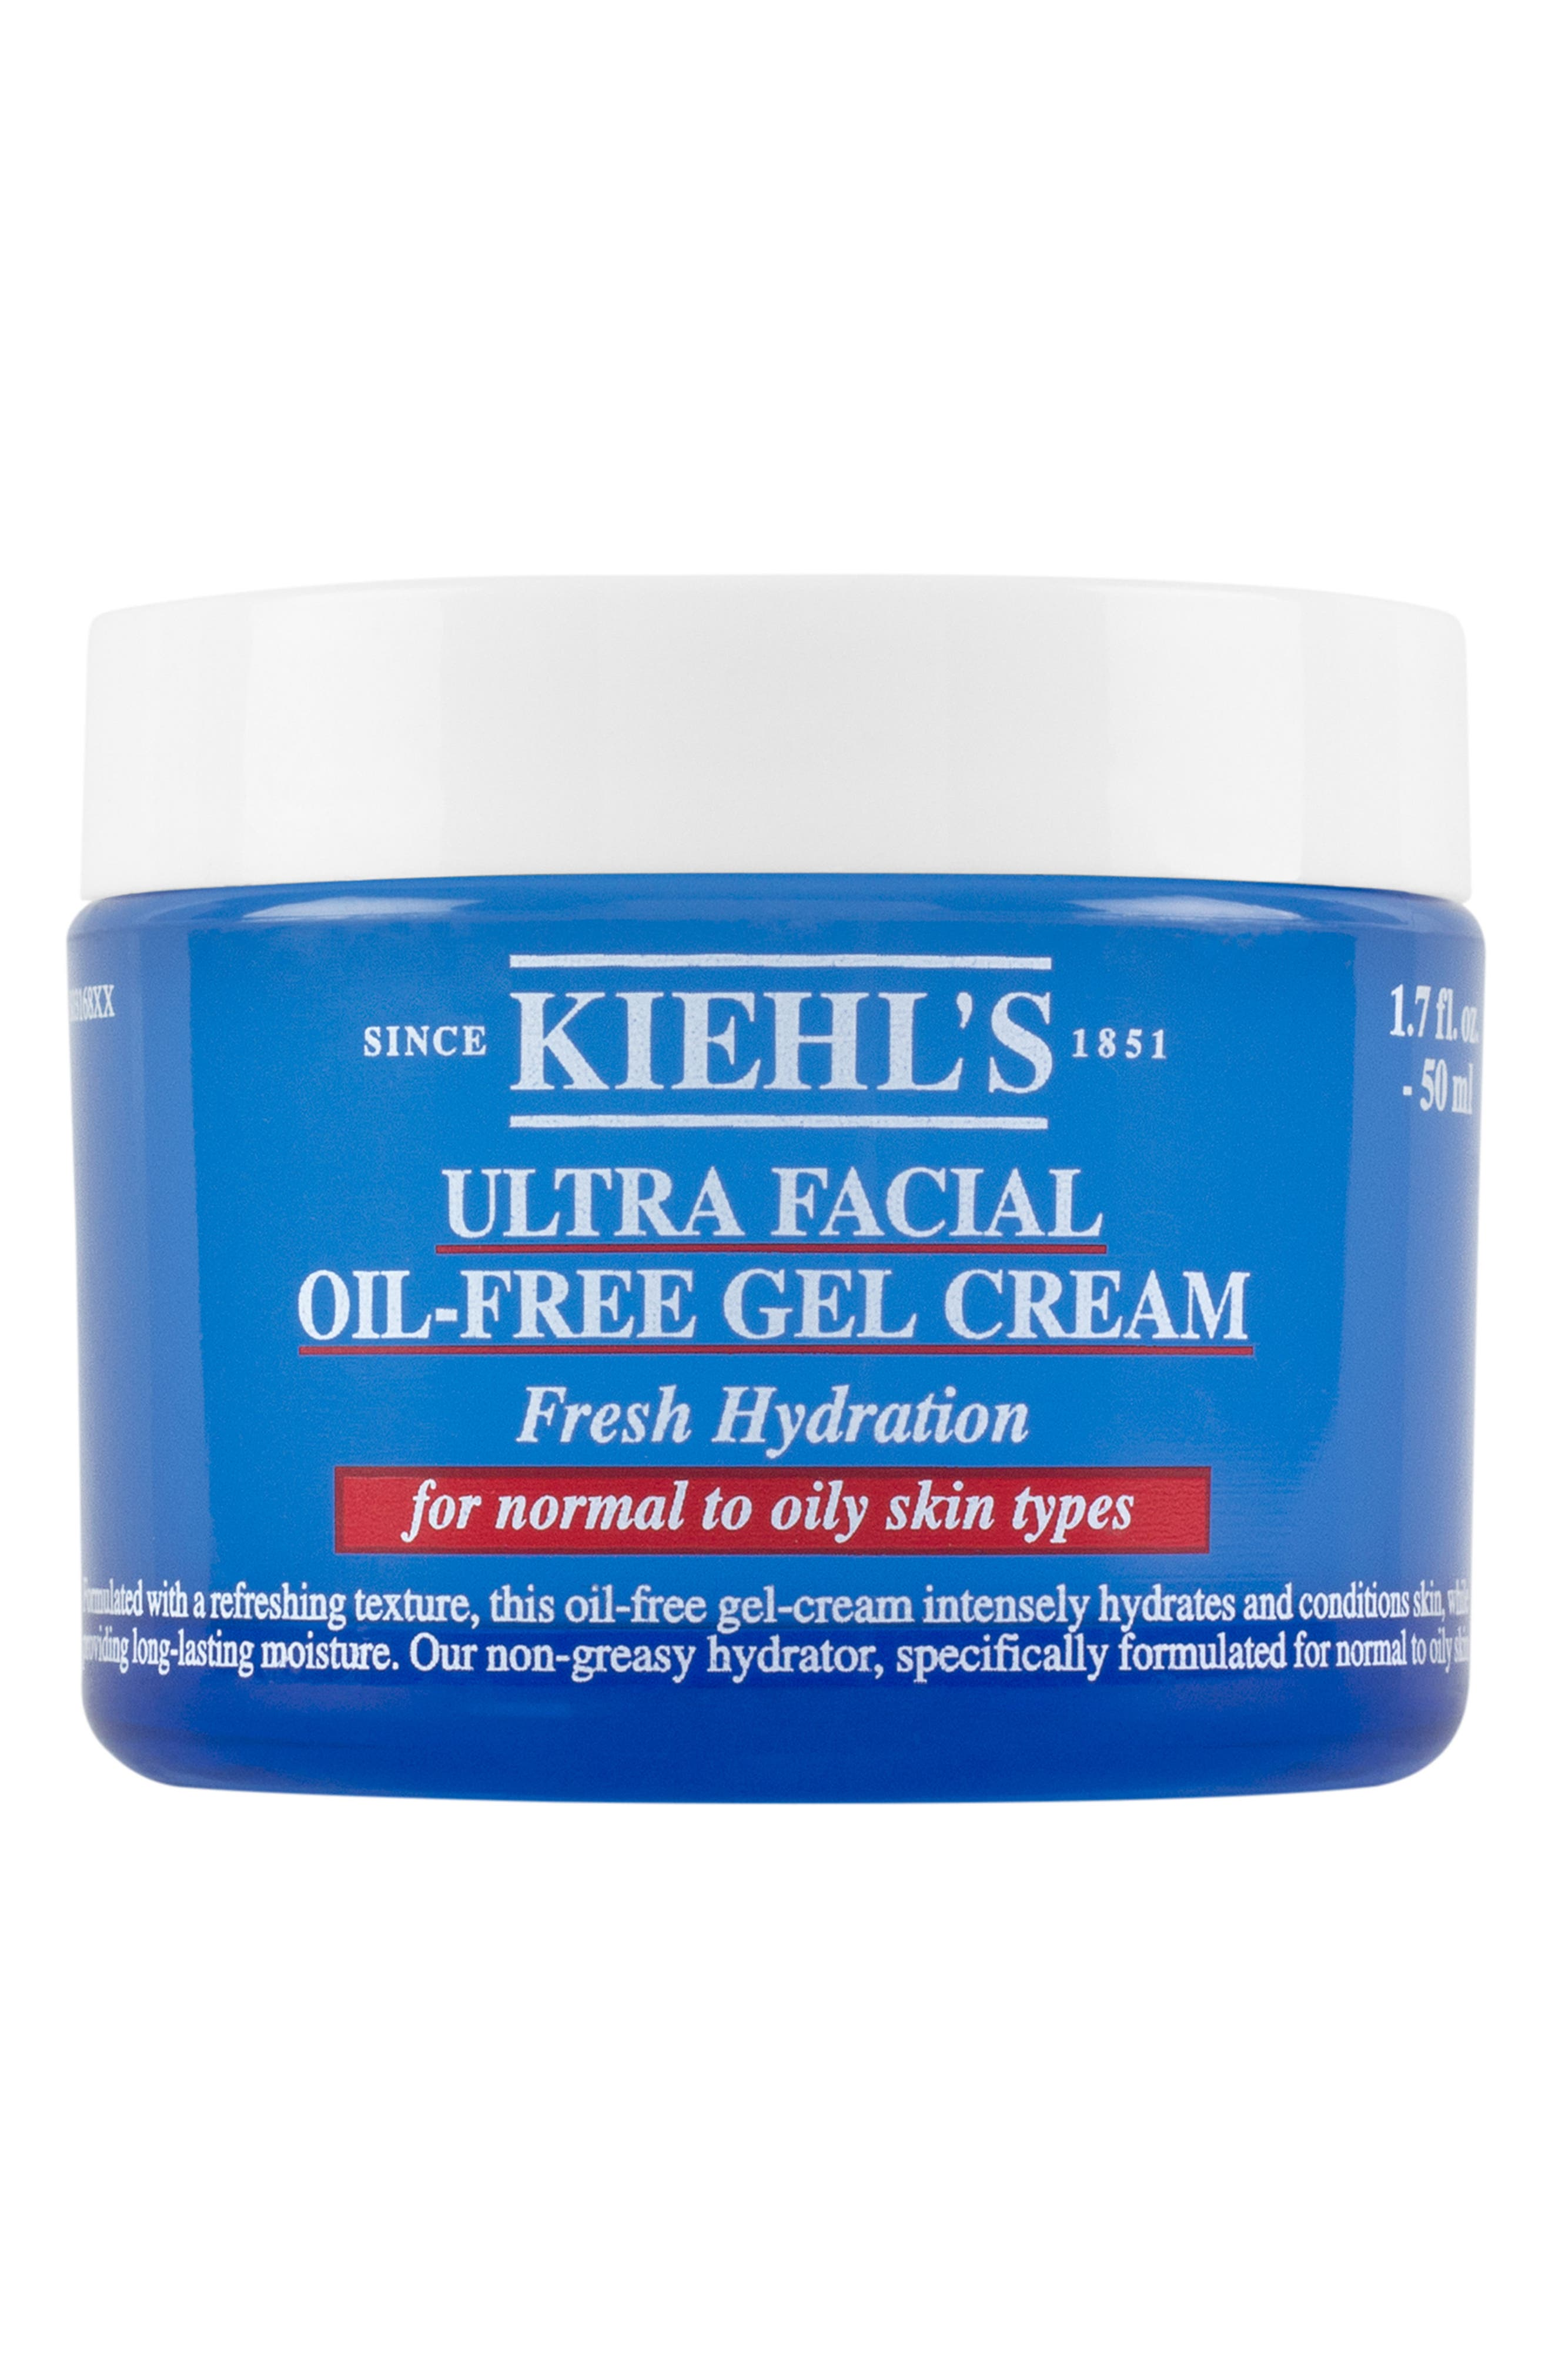 Main Image - Kiehl's Since 1851 'Ultra Facial' Oil-Free Gel Cream